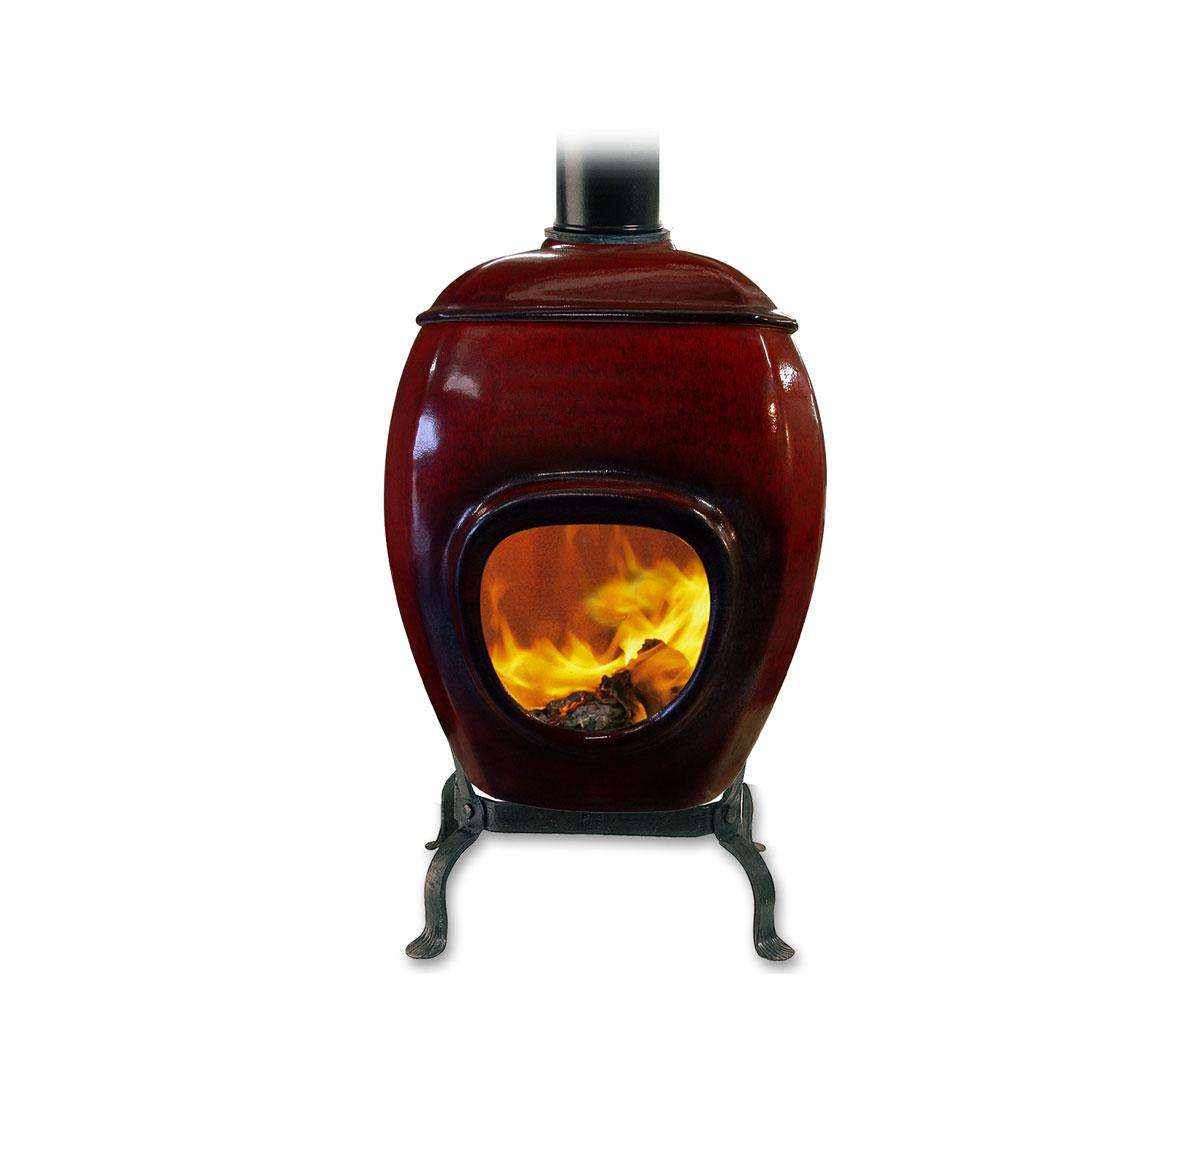 earthfire ceramic fireplace